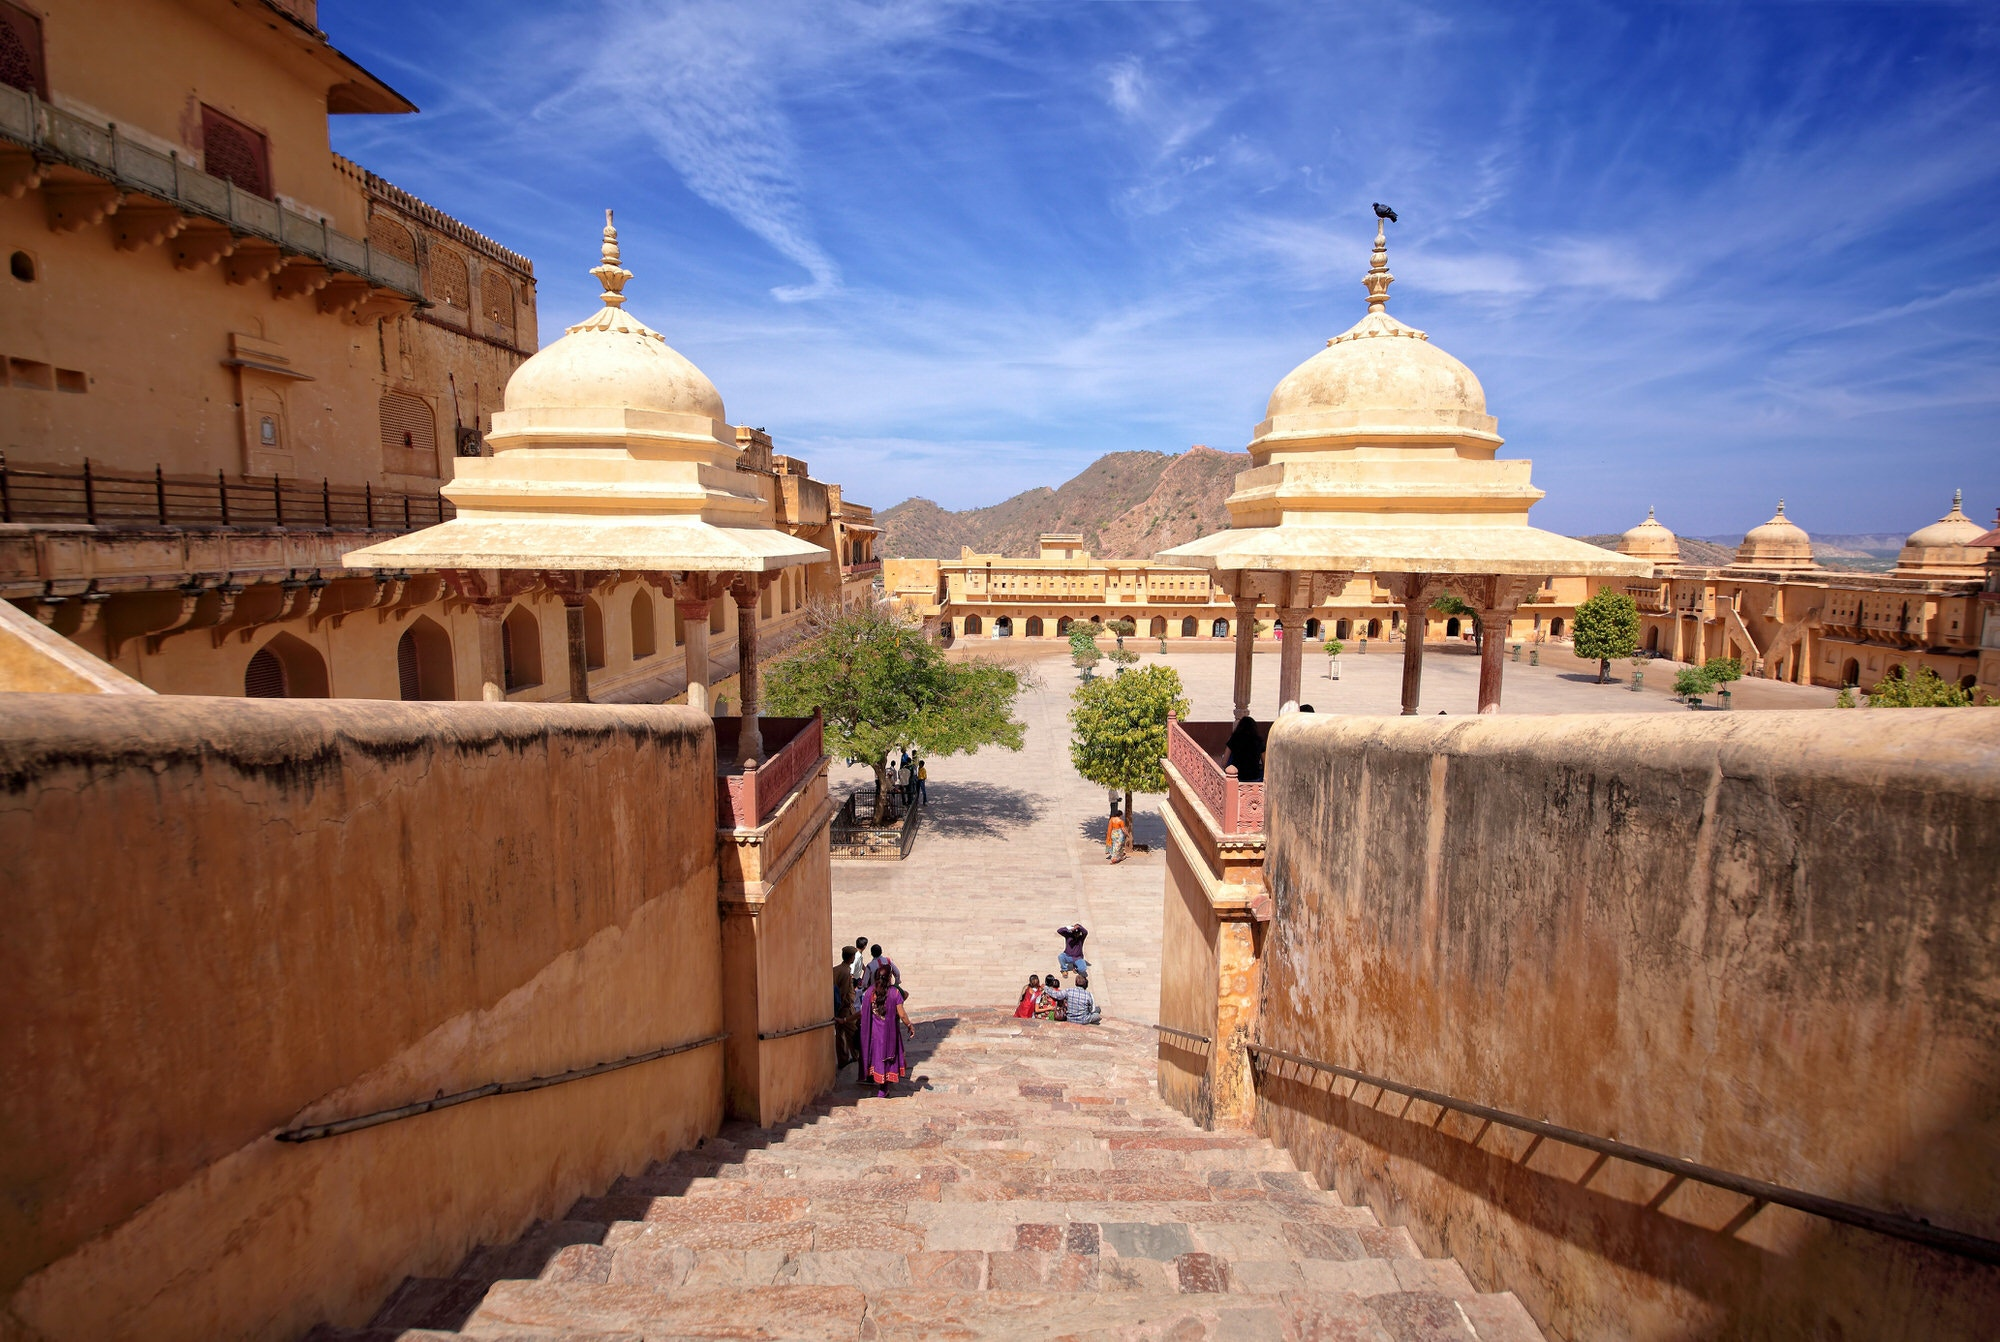 Amber Fort, Jaipur, India, under a blue sky